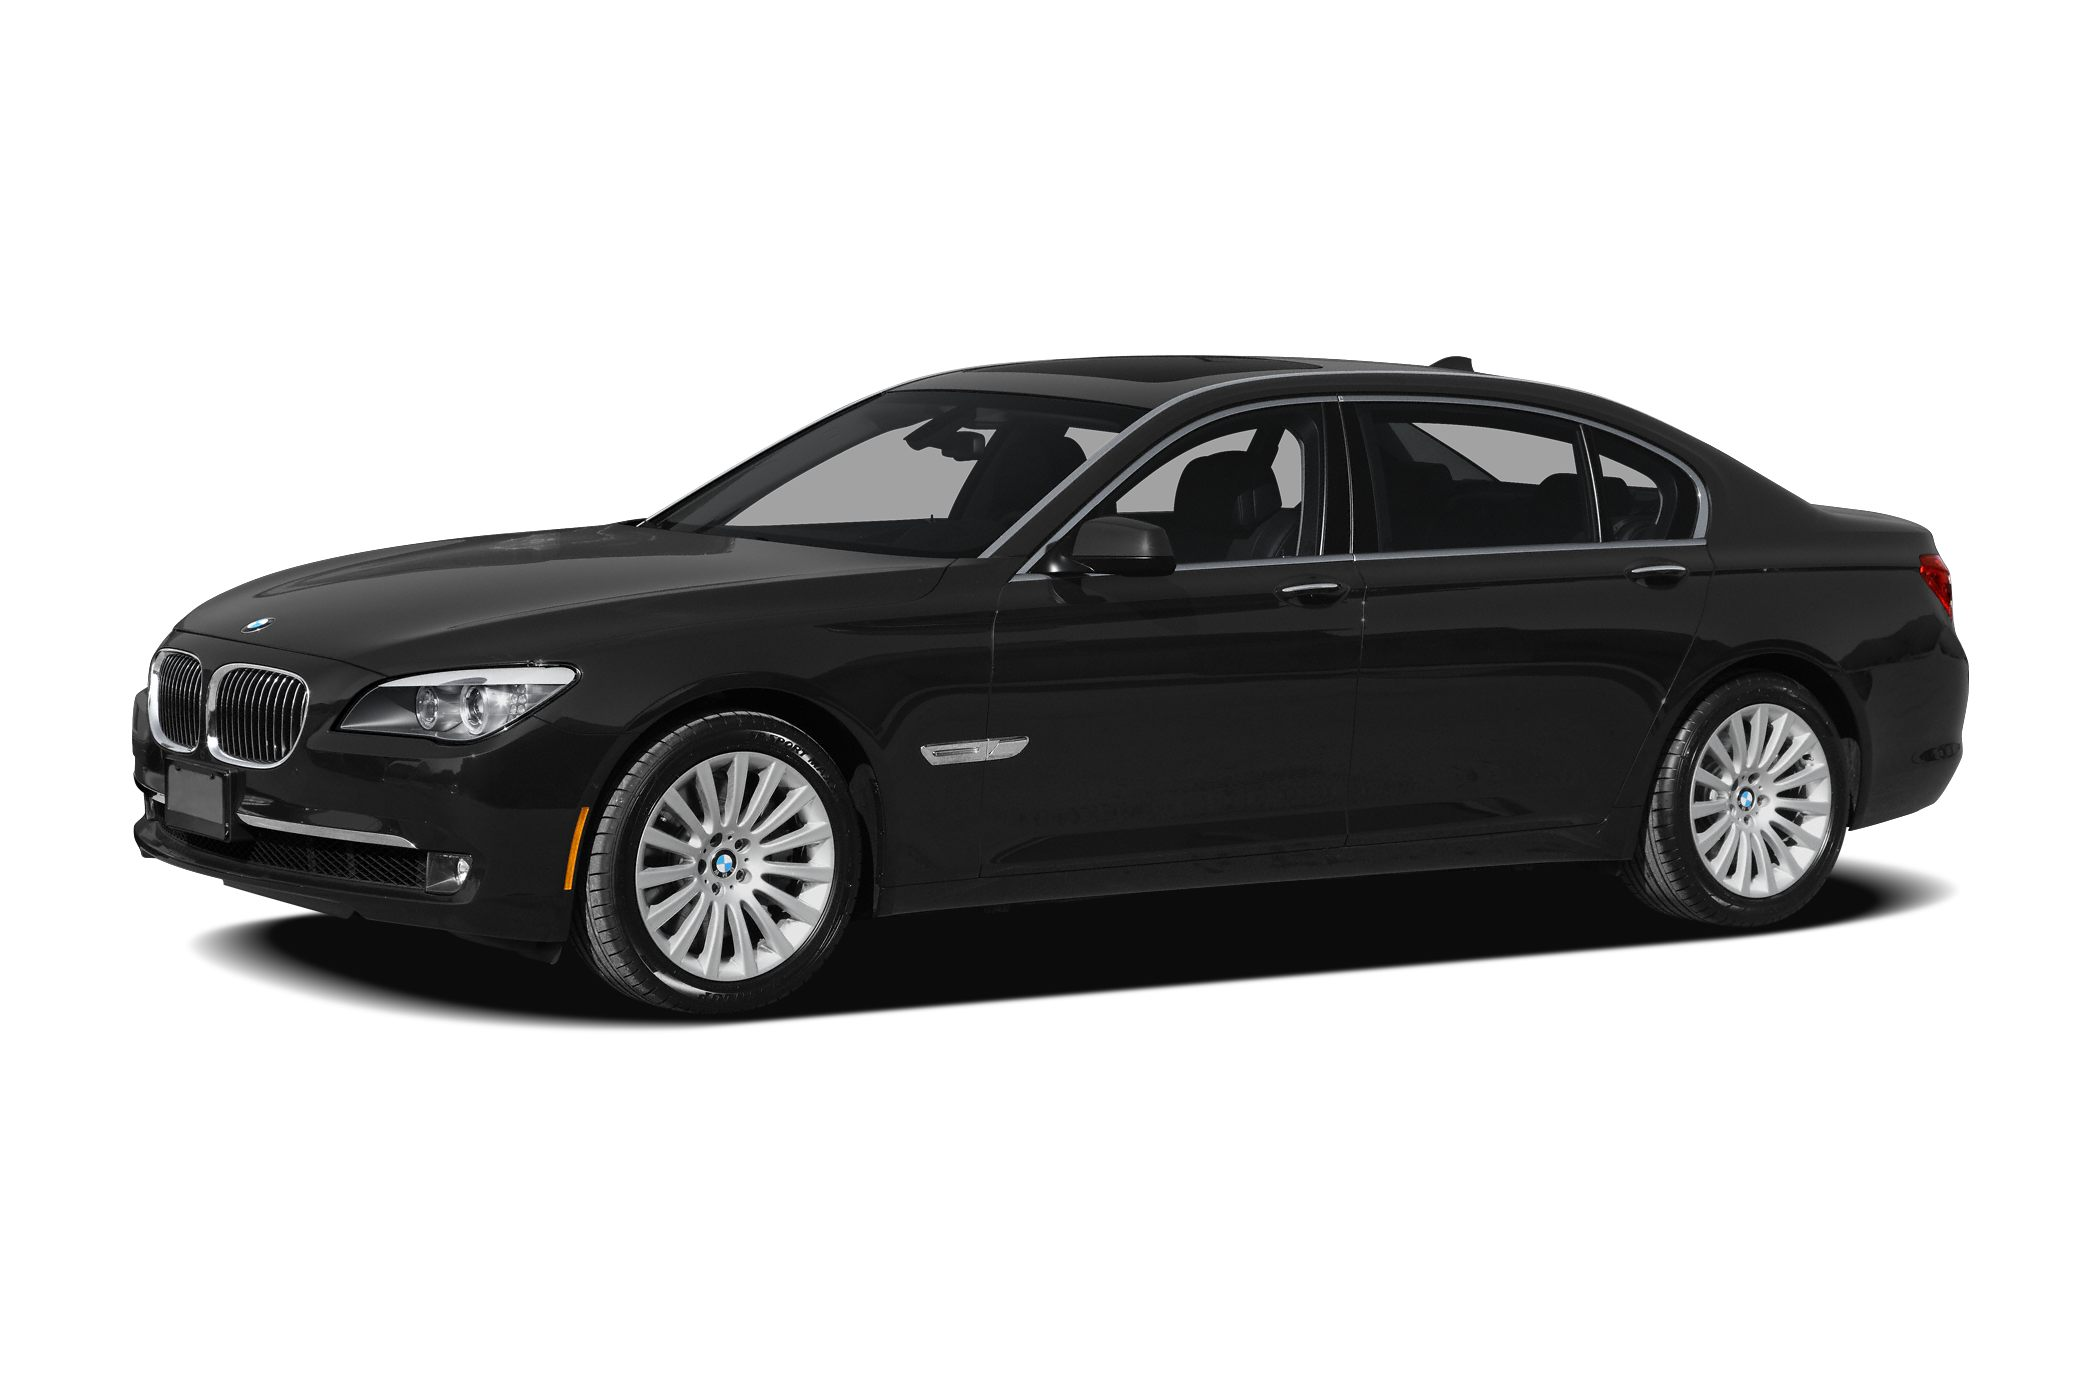 2009 BMW 7 Series 750Li WE SELL OUR VEHICLES AT WHOLESALE PRICES AND STAND BEHIND OUR CARS  C